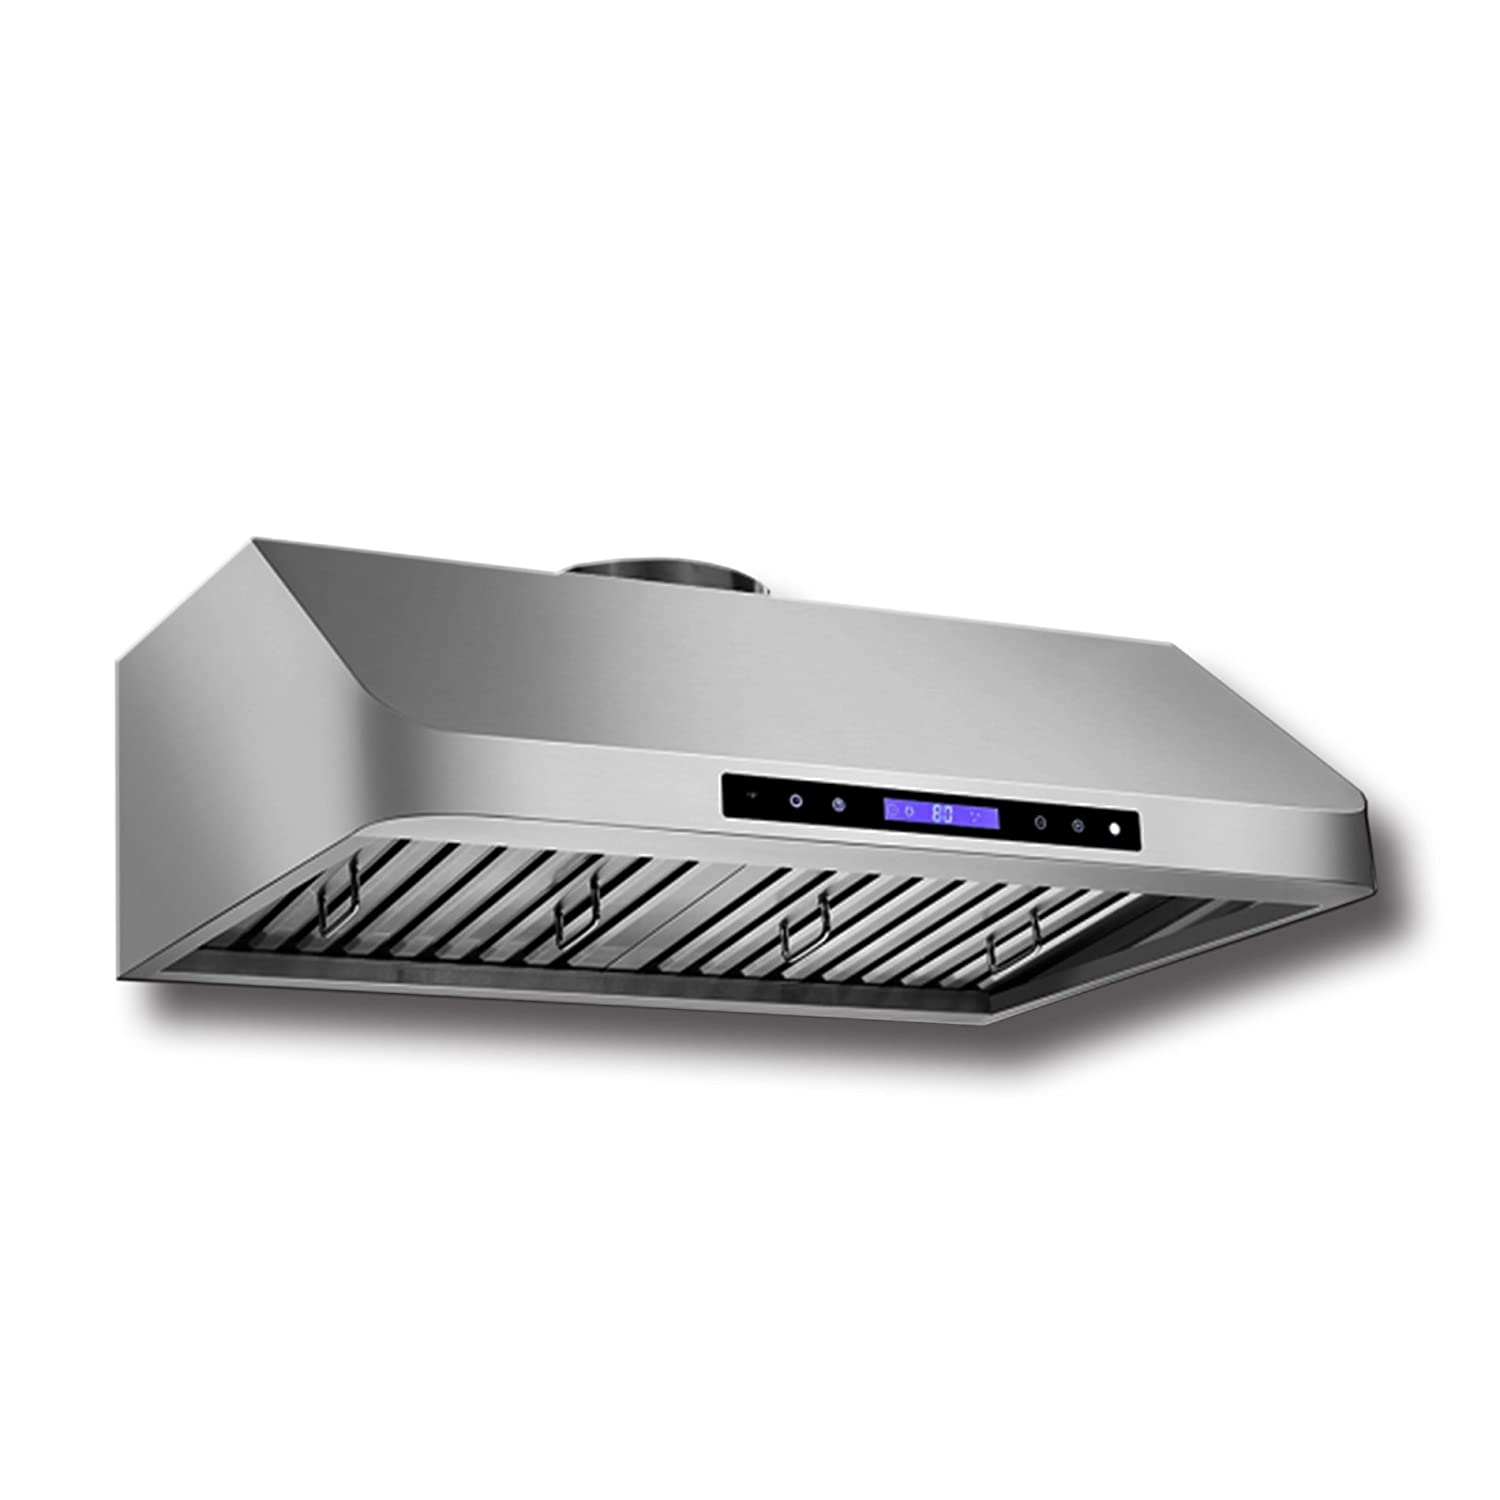 Proline PLJW 120 Under Cabinet Range Hood - 6 Speed - 900 Max CFM Low Profile - Stainless Steel Professional Baffle Filters Dishwasher safe 3 Year Warranty Sizes include 30 36 42 and 48 inch